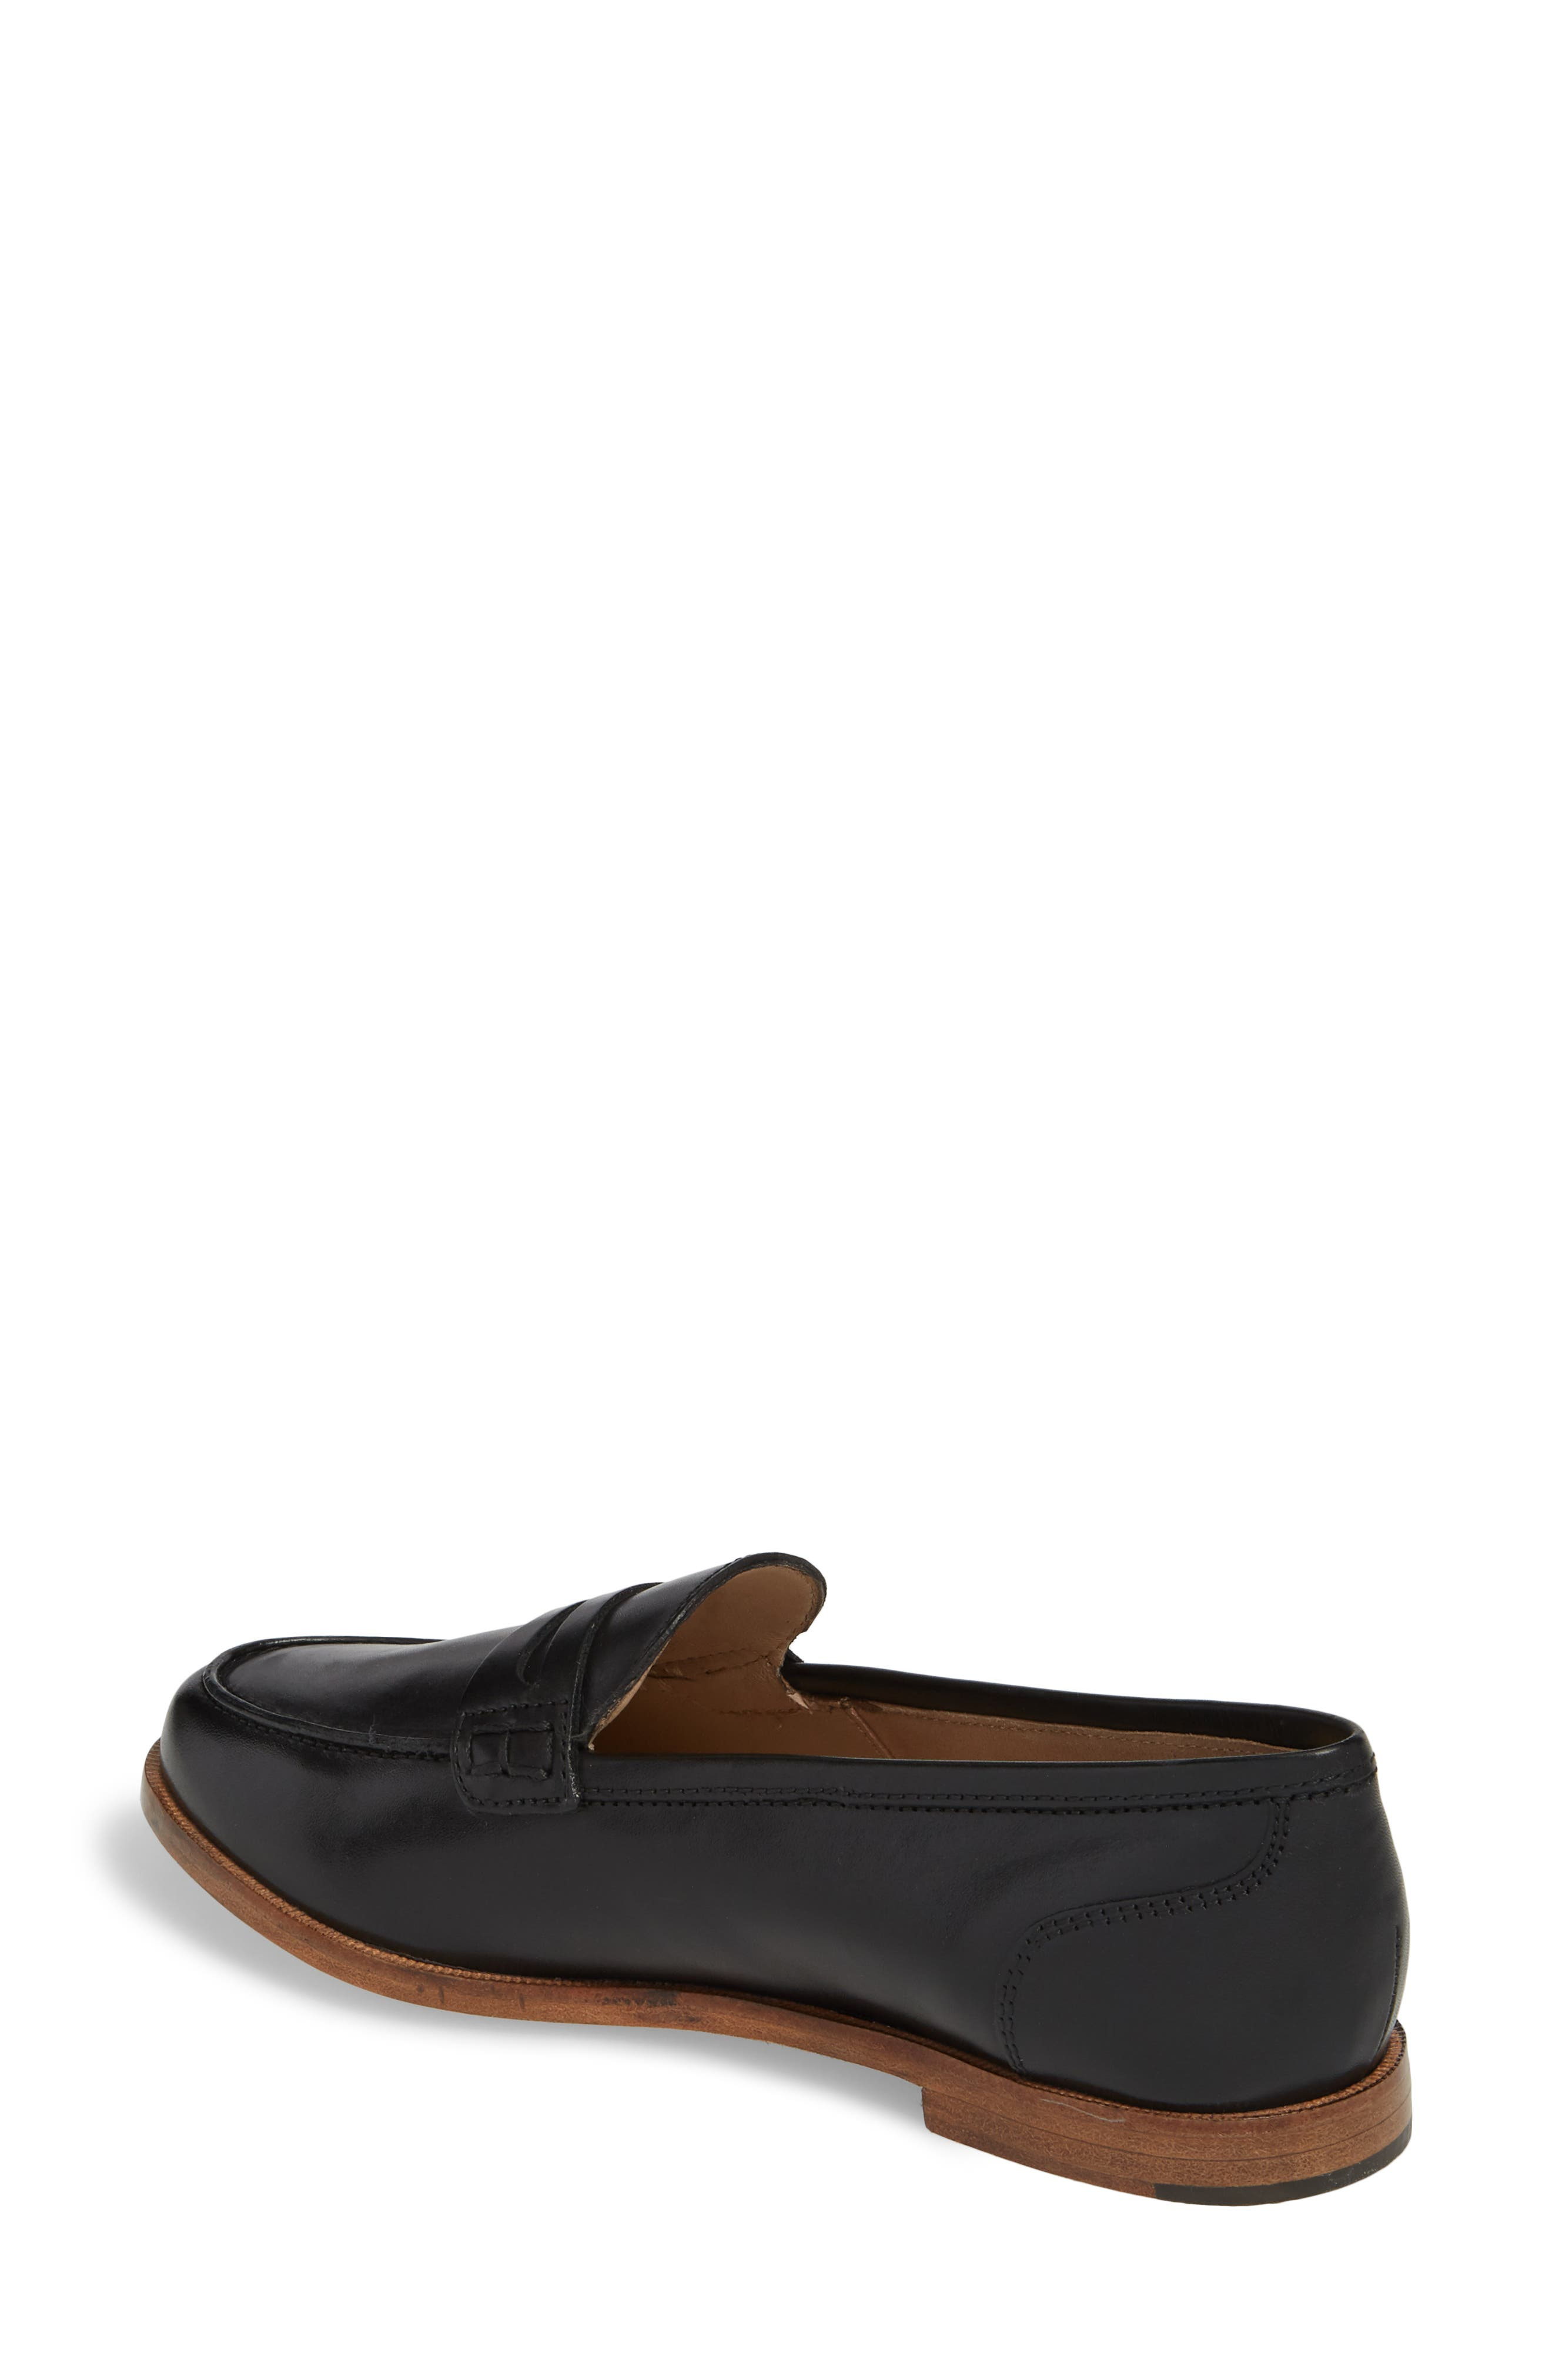 J.CREW, Ryan Penny Loafer, Alternate thumbnail 2, color, BLACK LEATHER